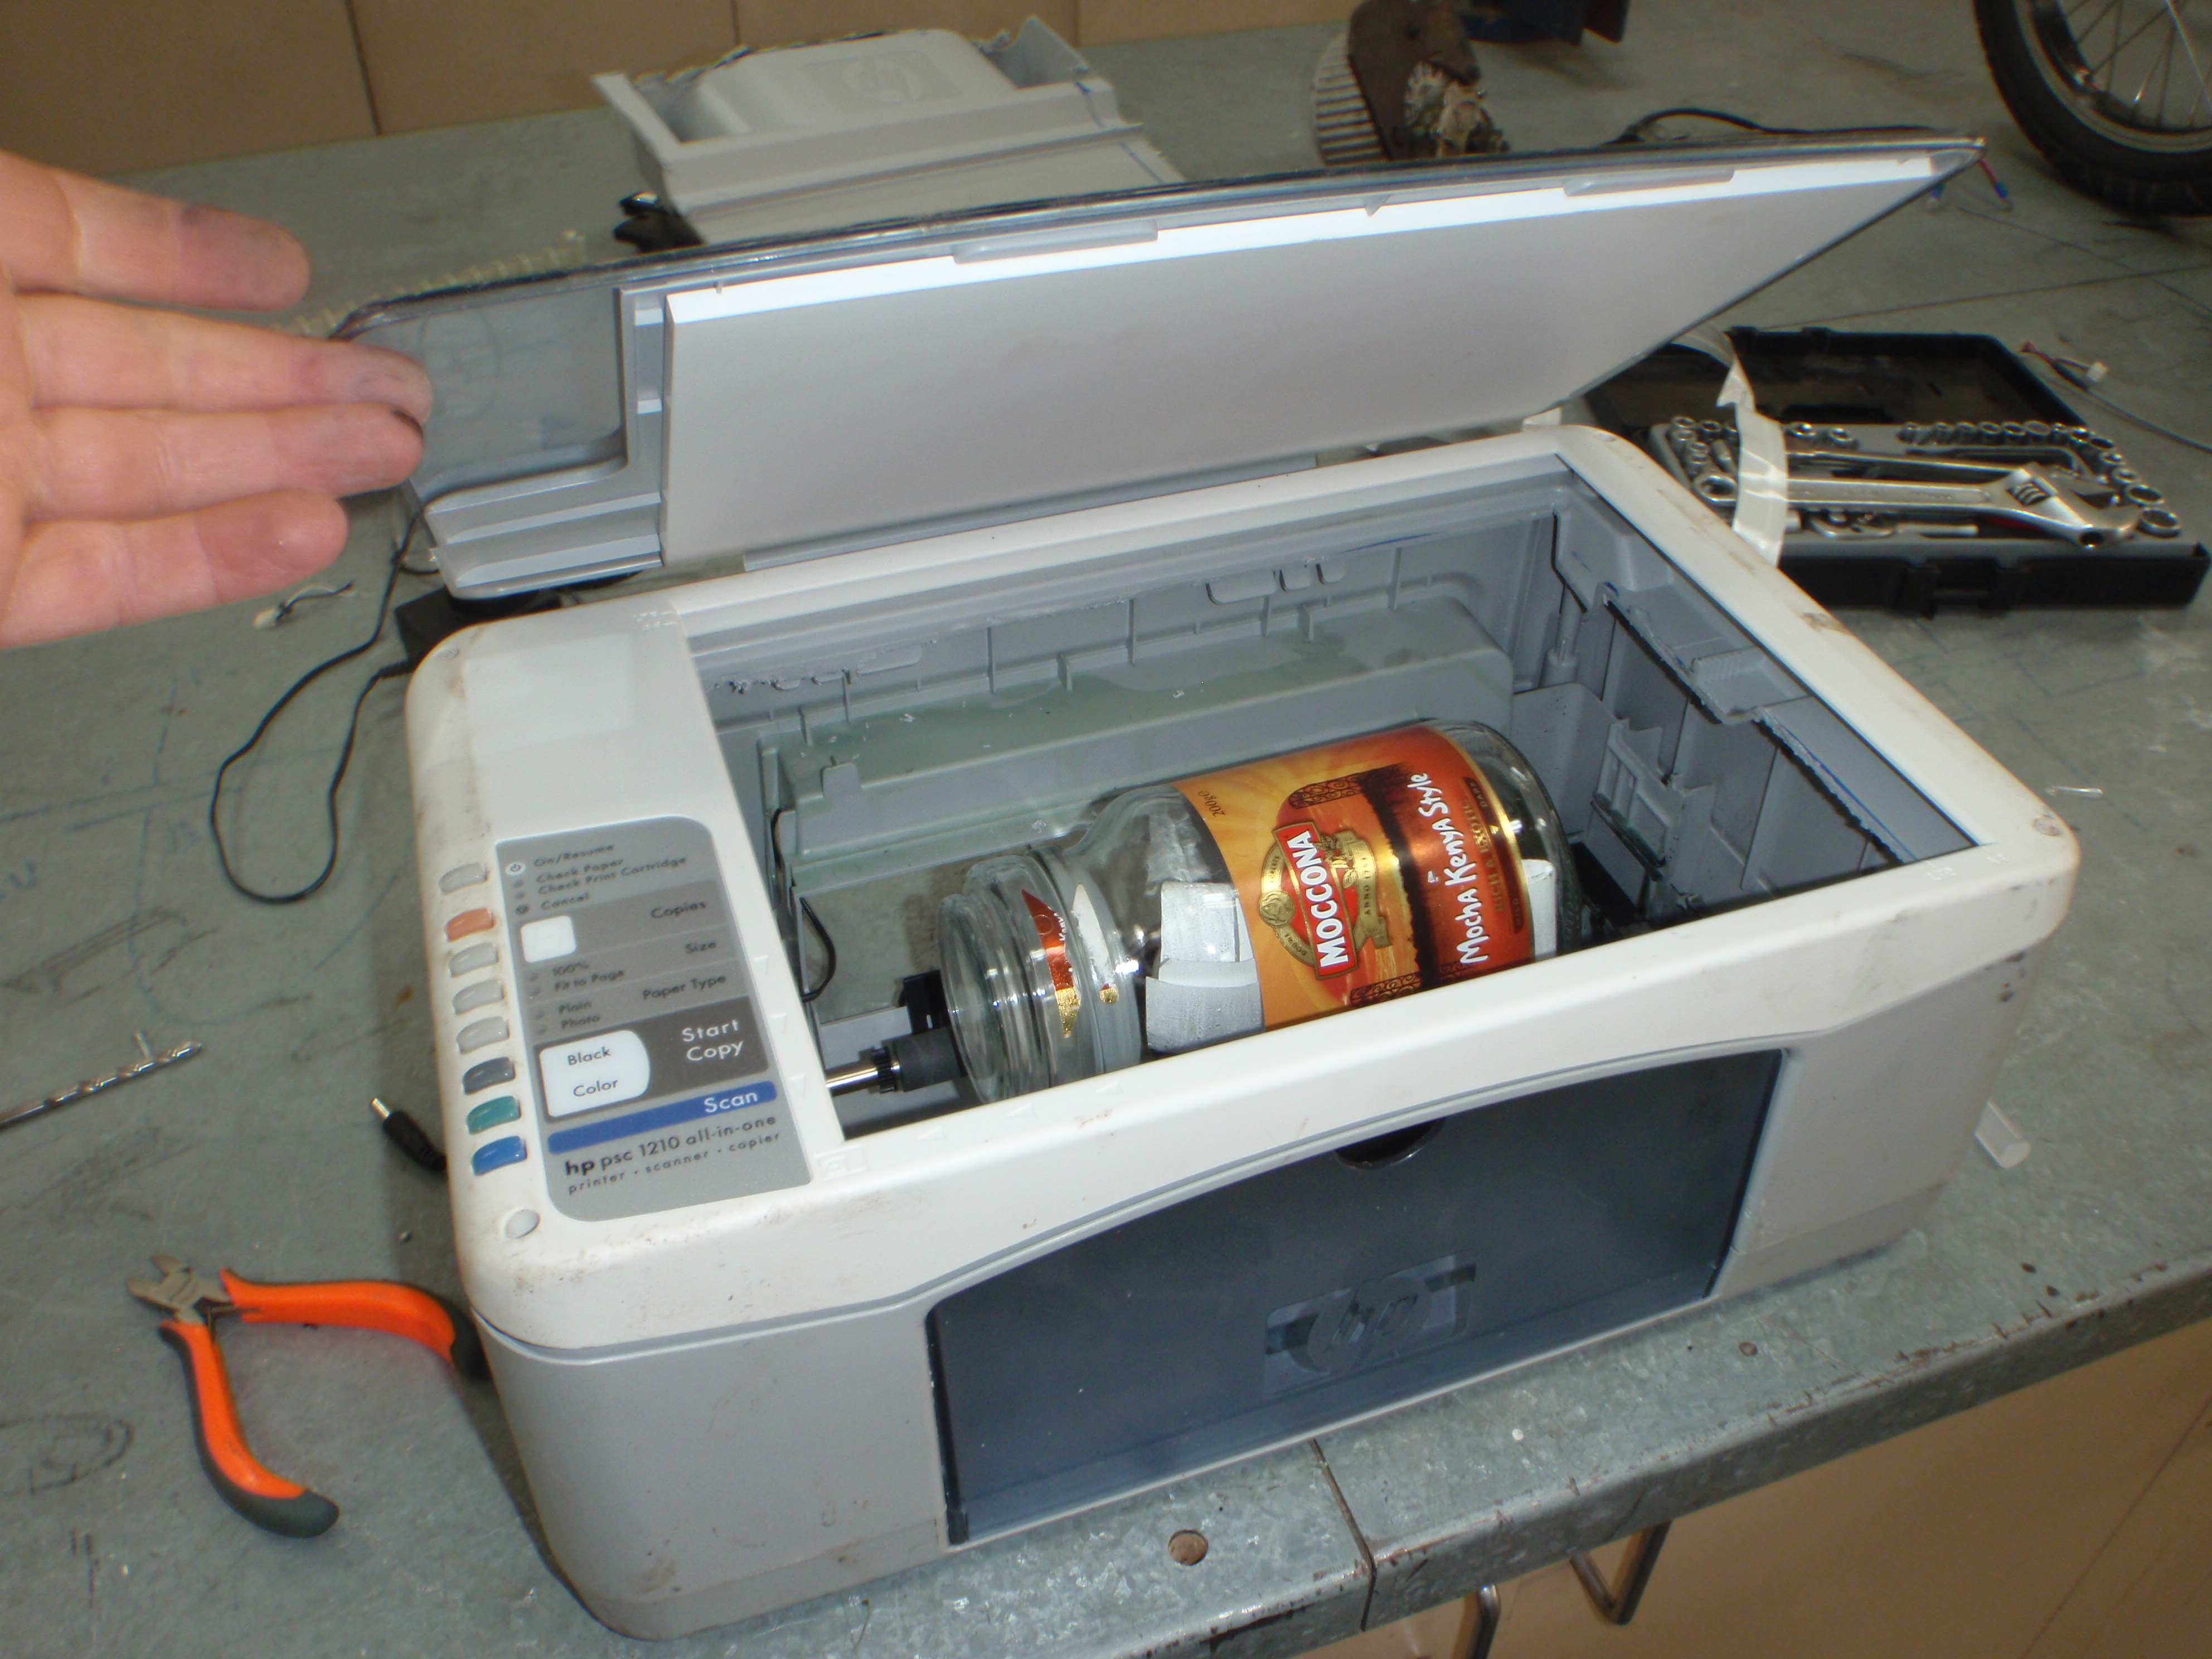 Picture of Coin Tumbler Printer Hack